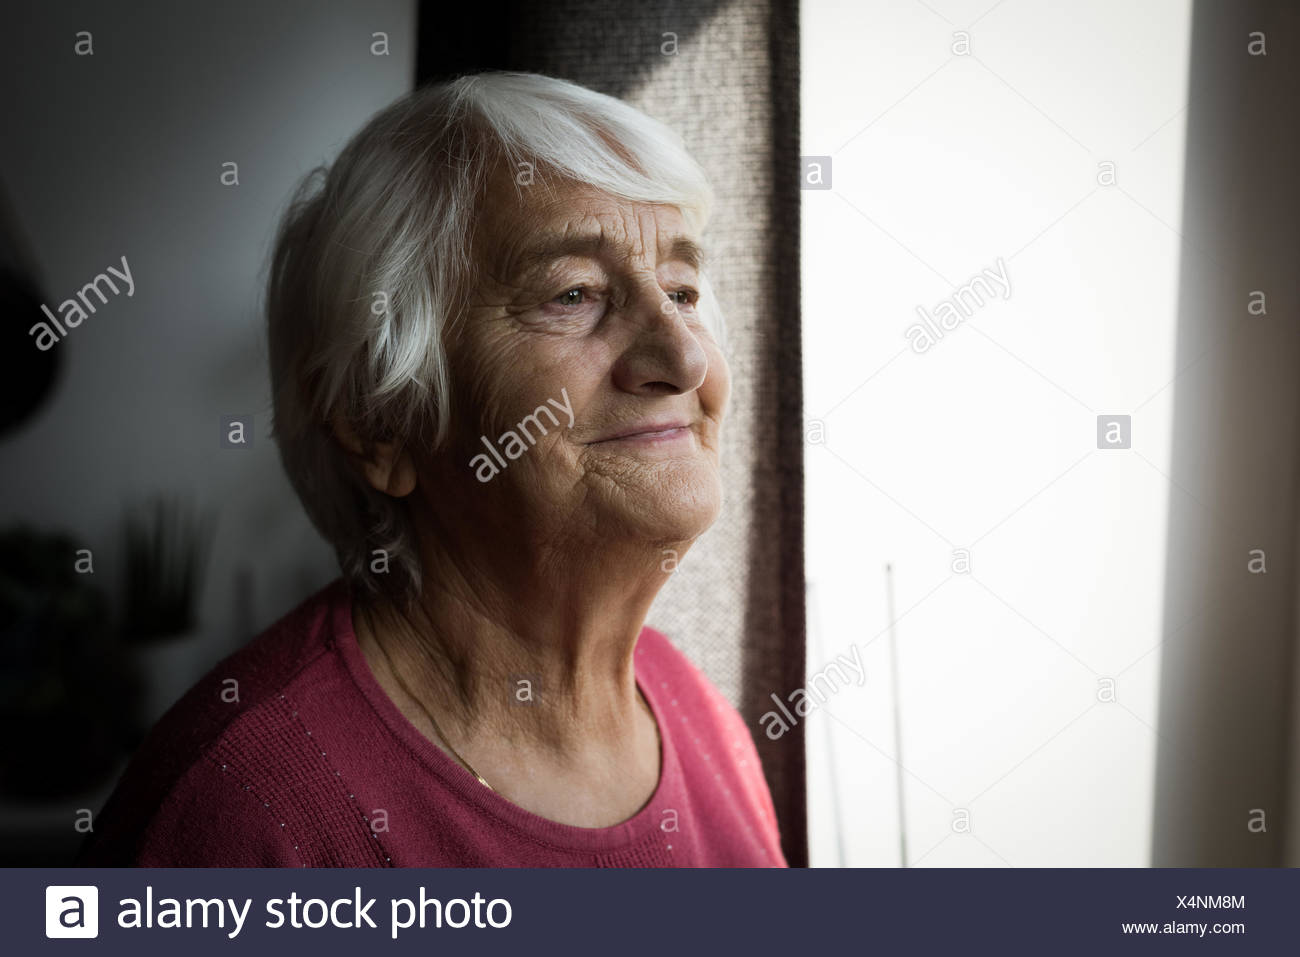 Senior woman standing near window - Stock Image